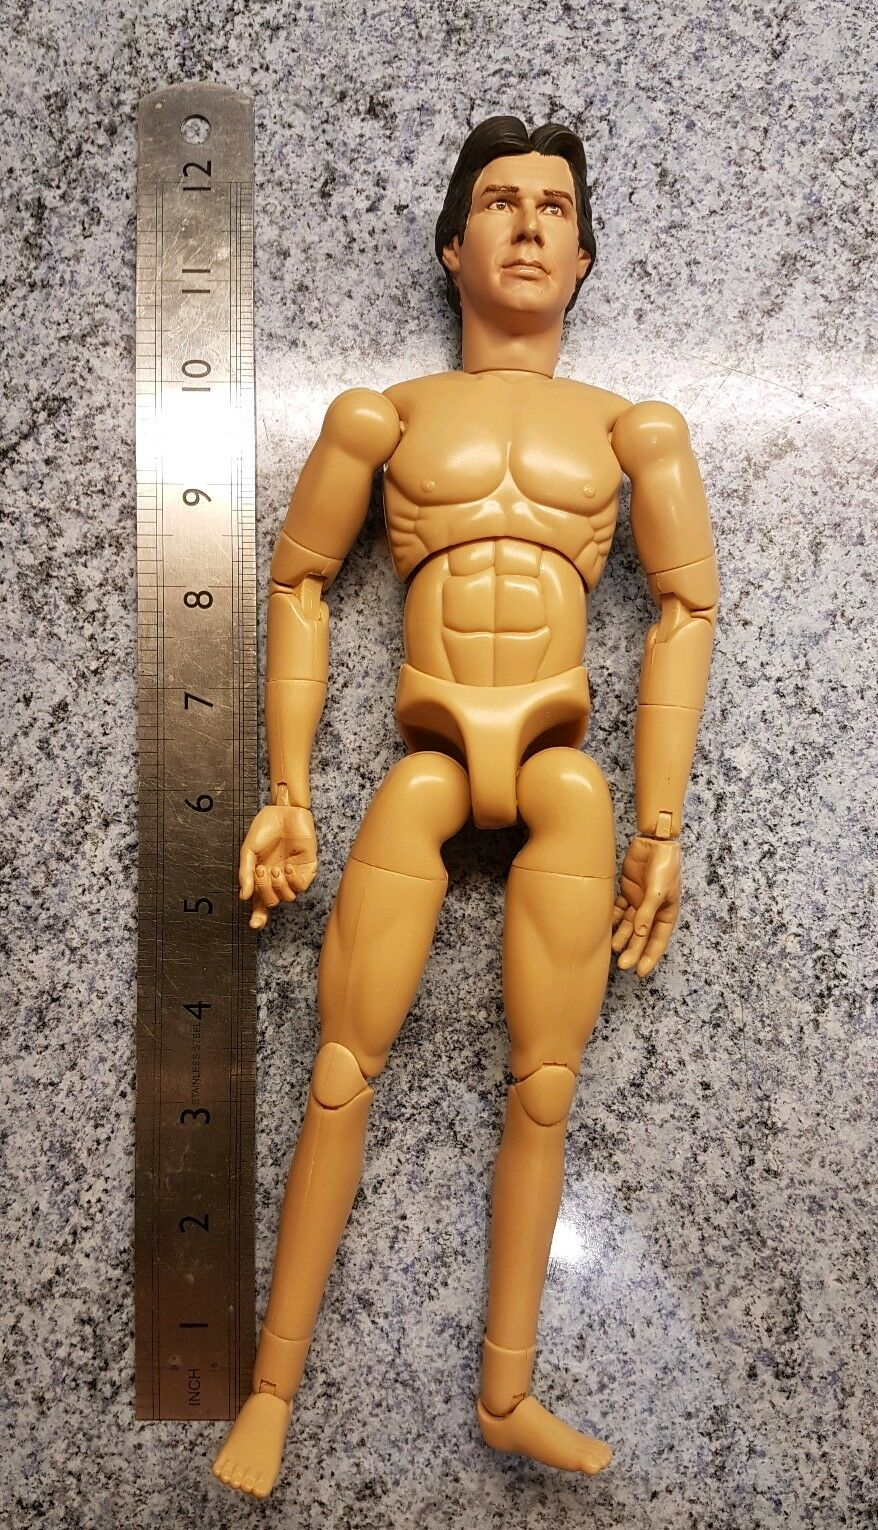 1/6 scale SIDESHOW Star Wars TESB Han Solo 's nude body for 12